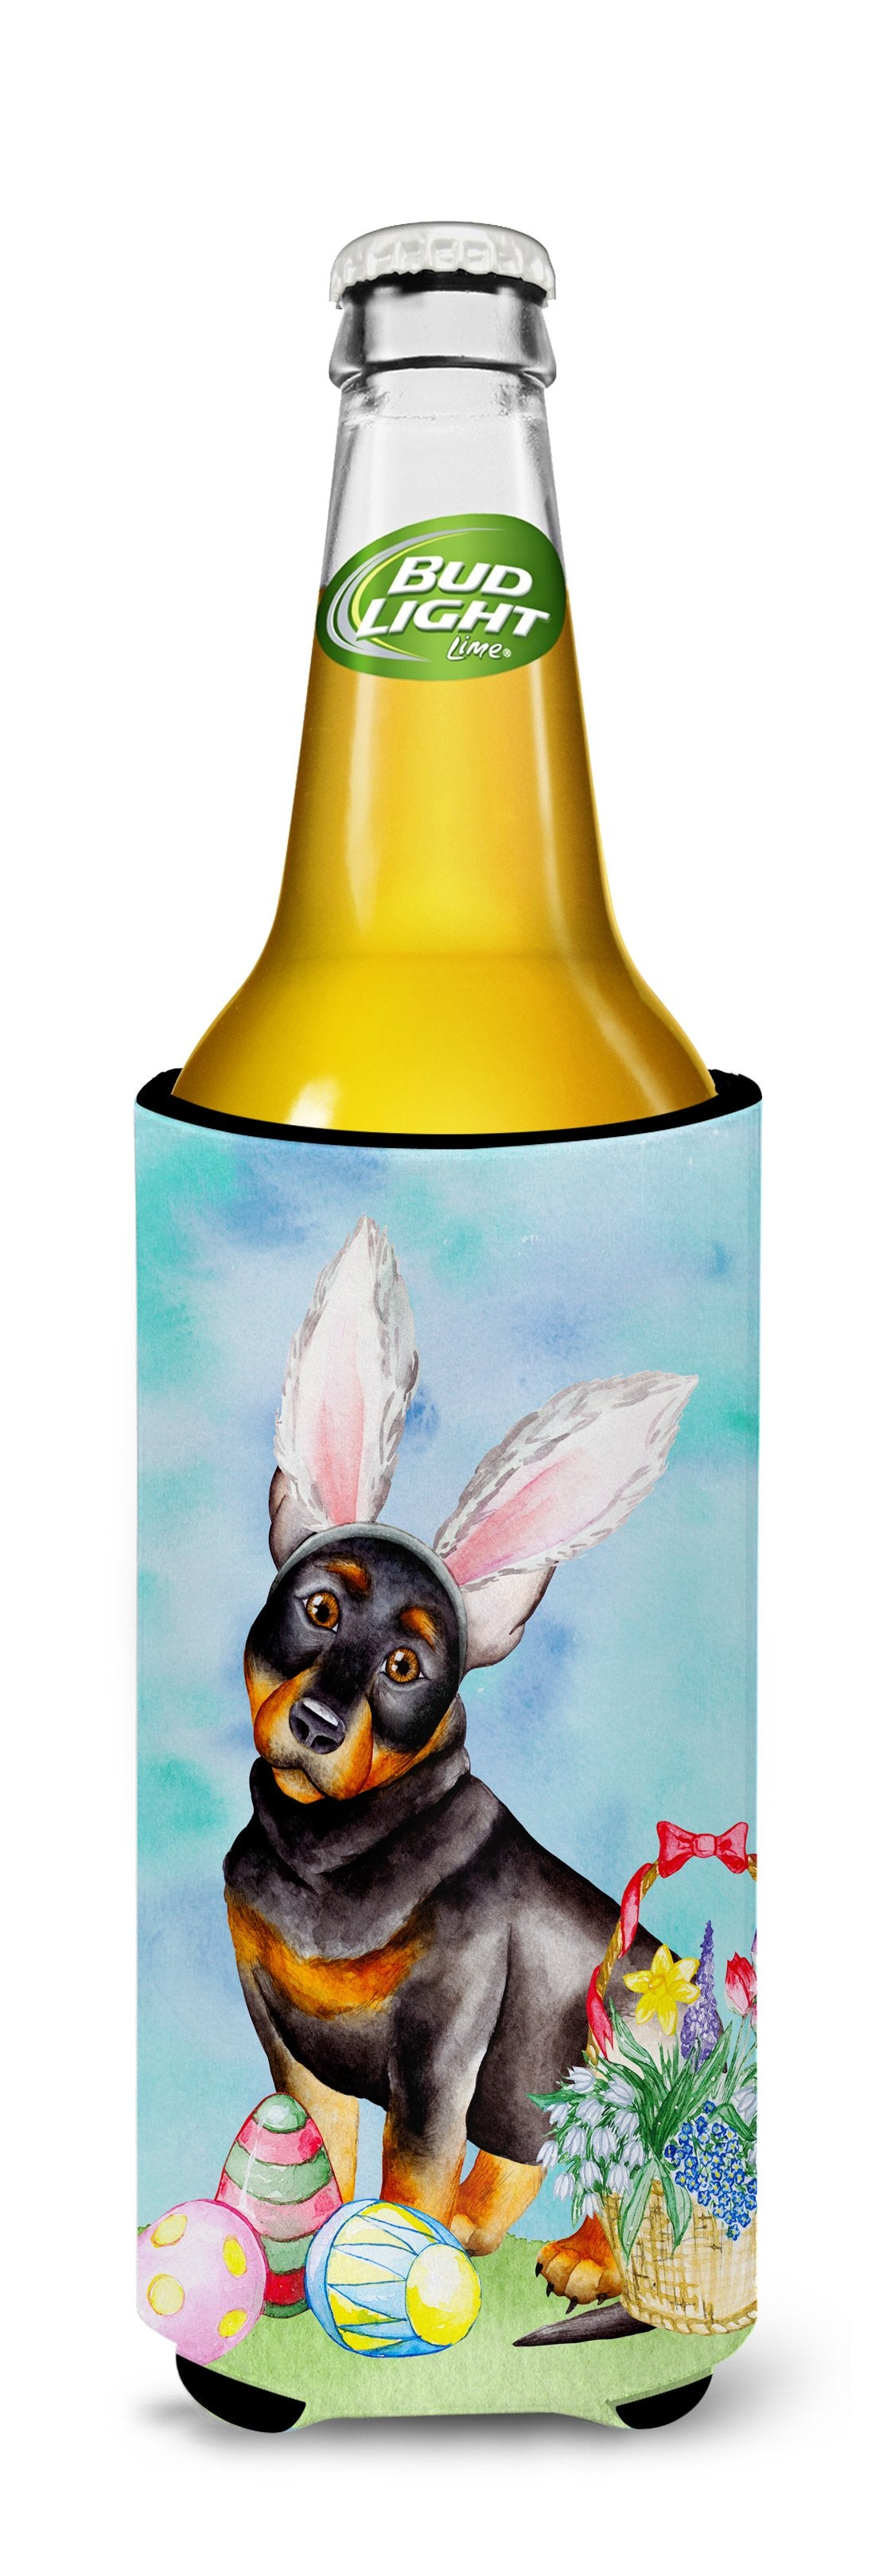 Lancashire Heeler Easter Bunny Michelob Ultra Hugger for slim cans CK1377MUK by Caroline's Treasures